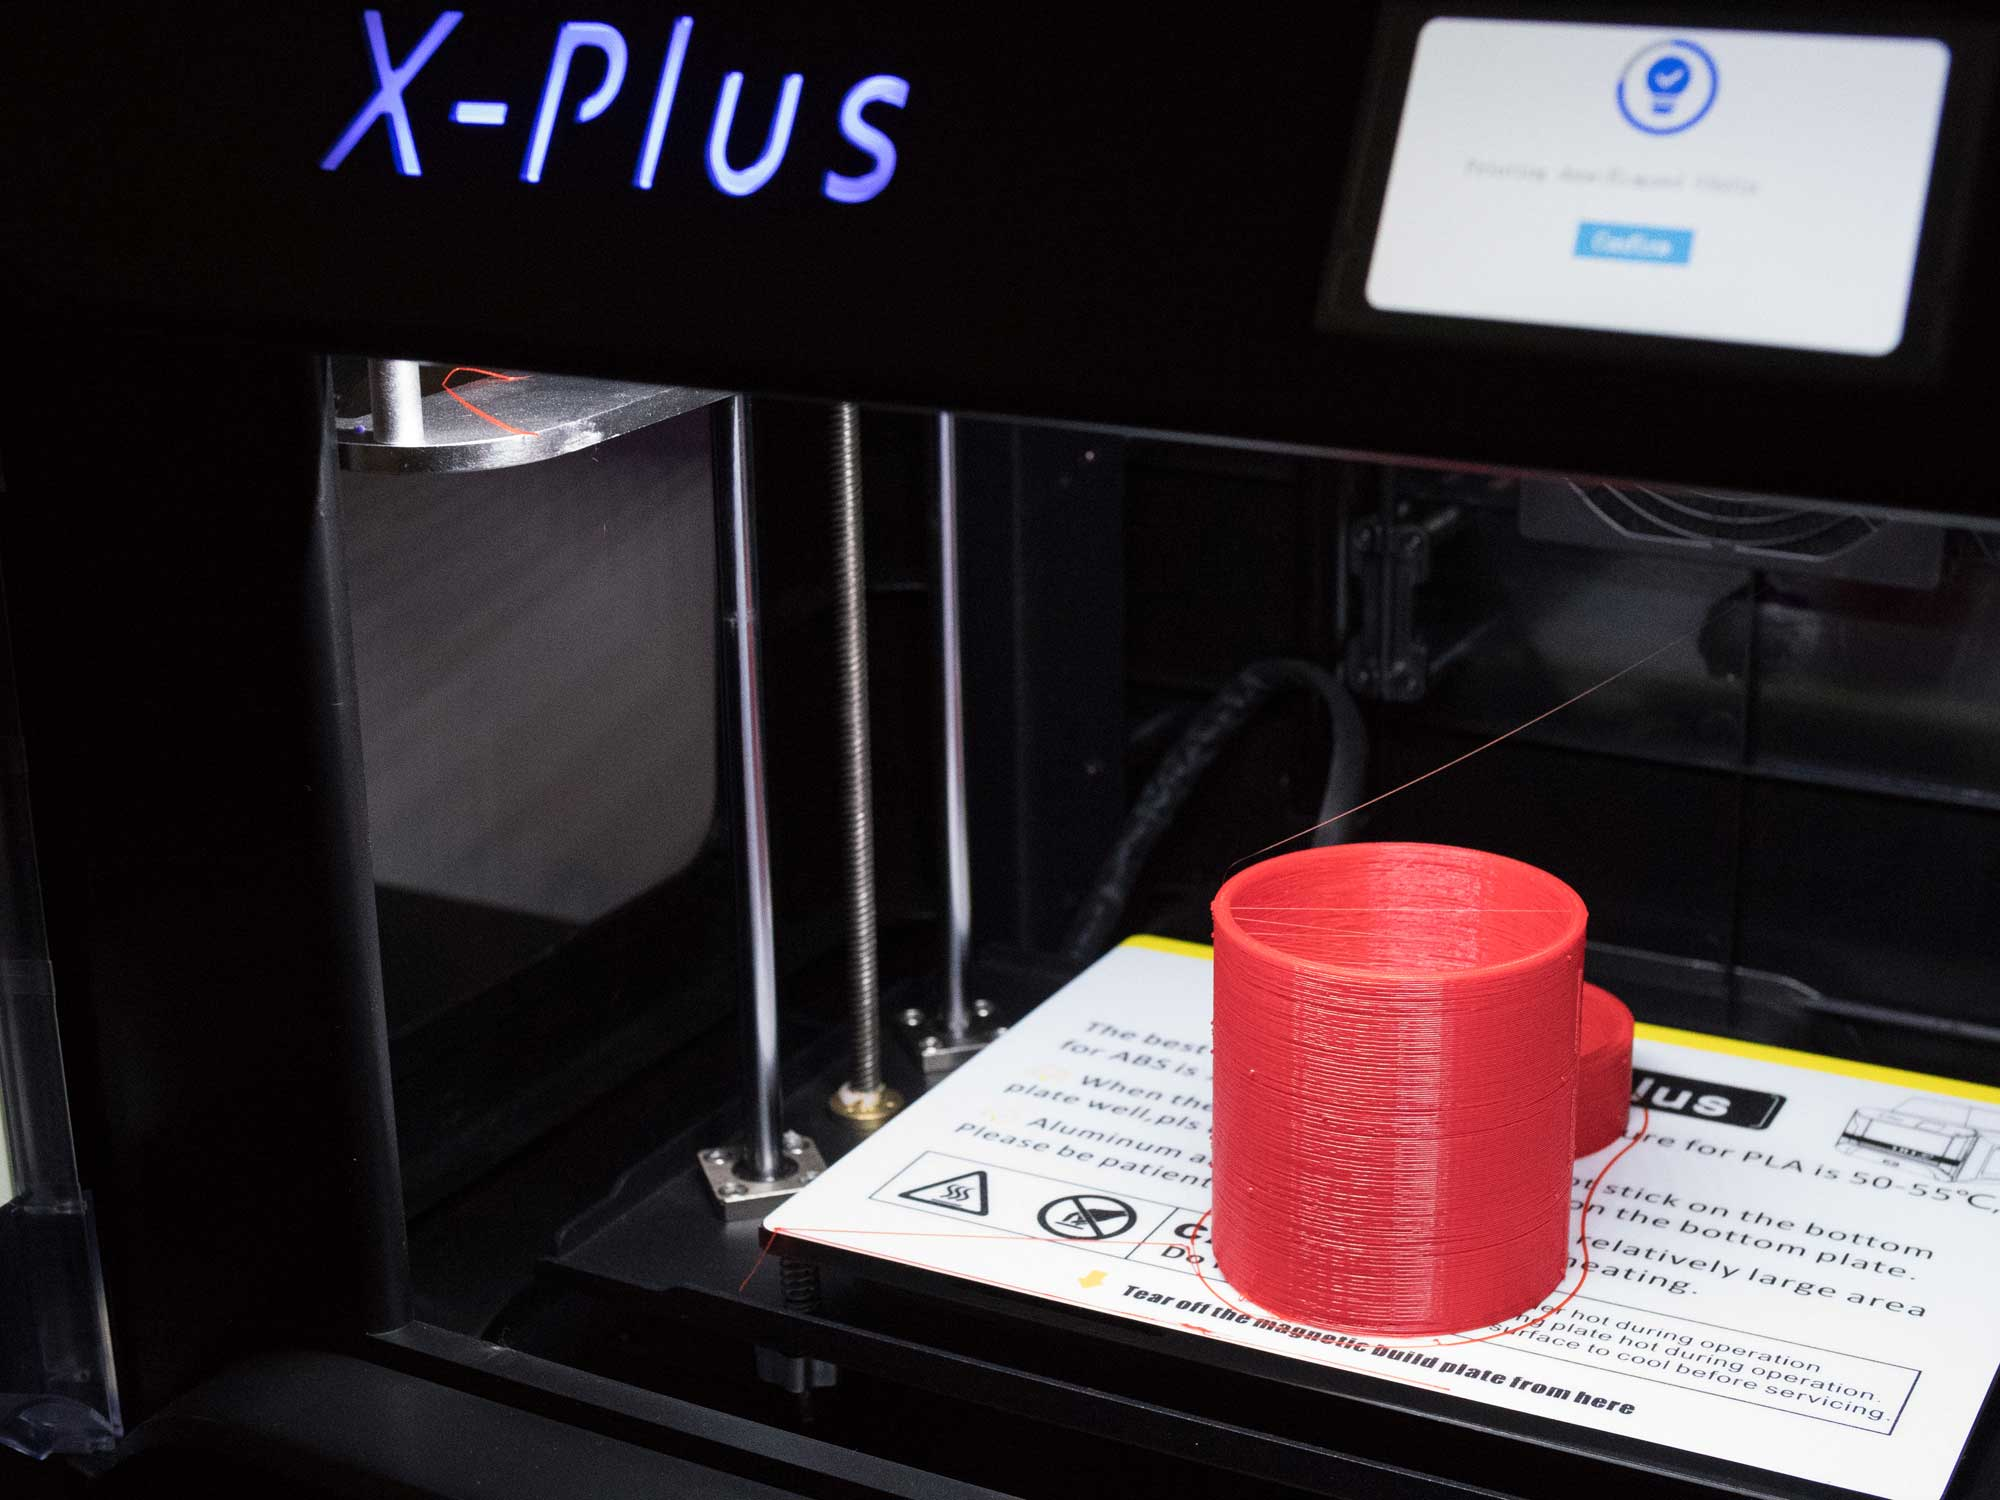 The dew shield being fabricated on the QIDI X-Plus 3D printer